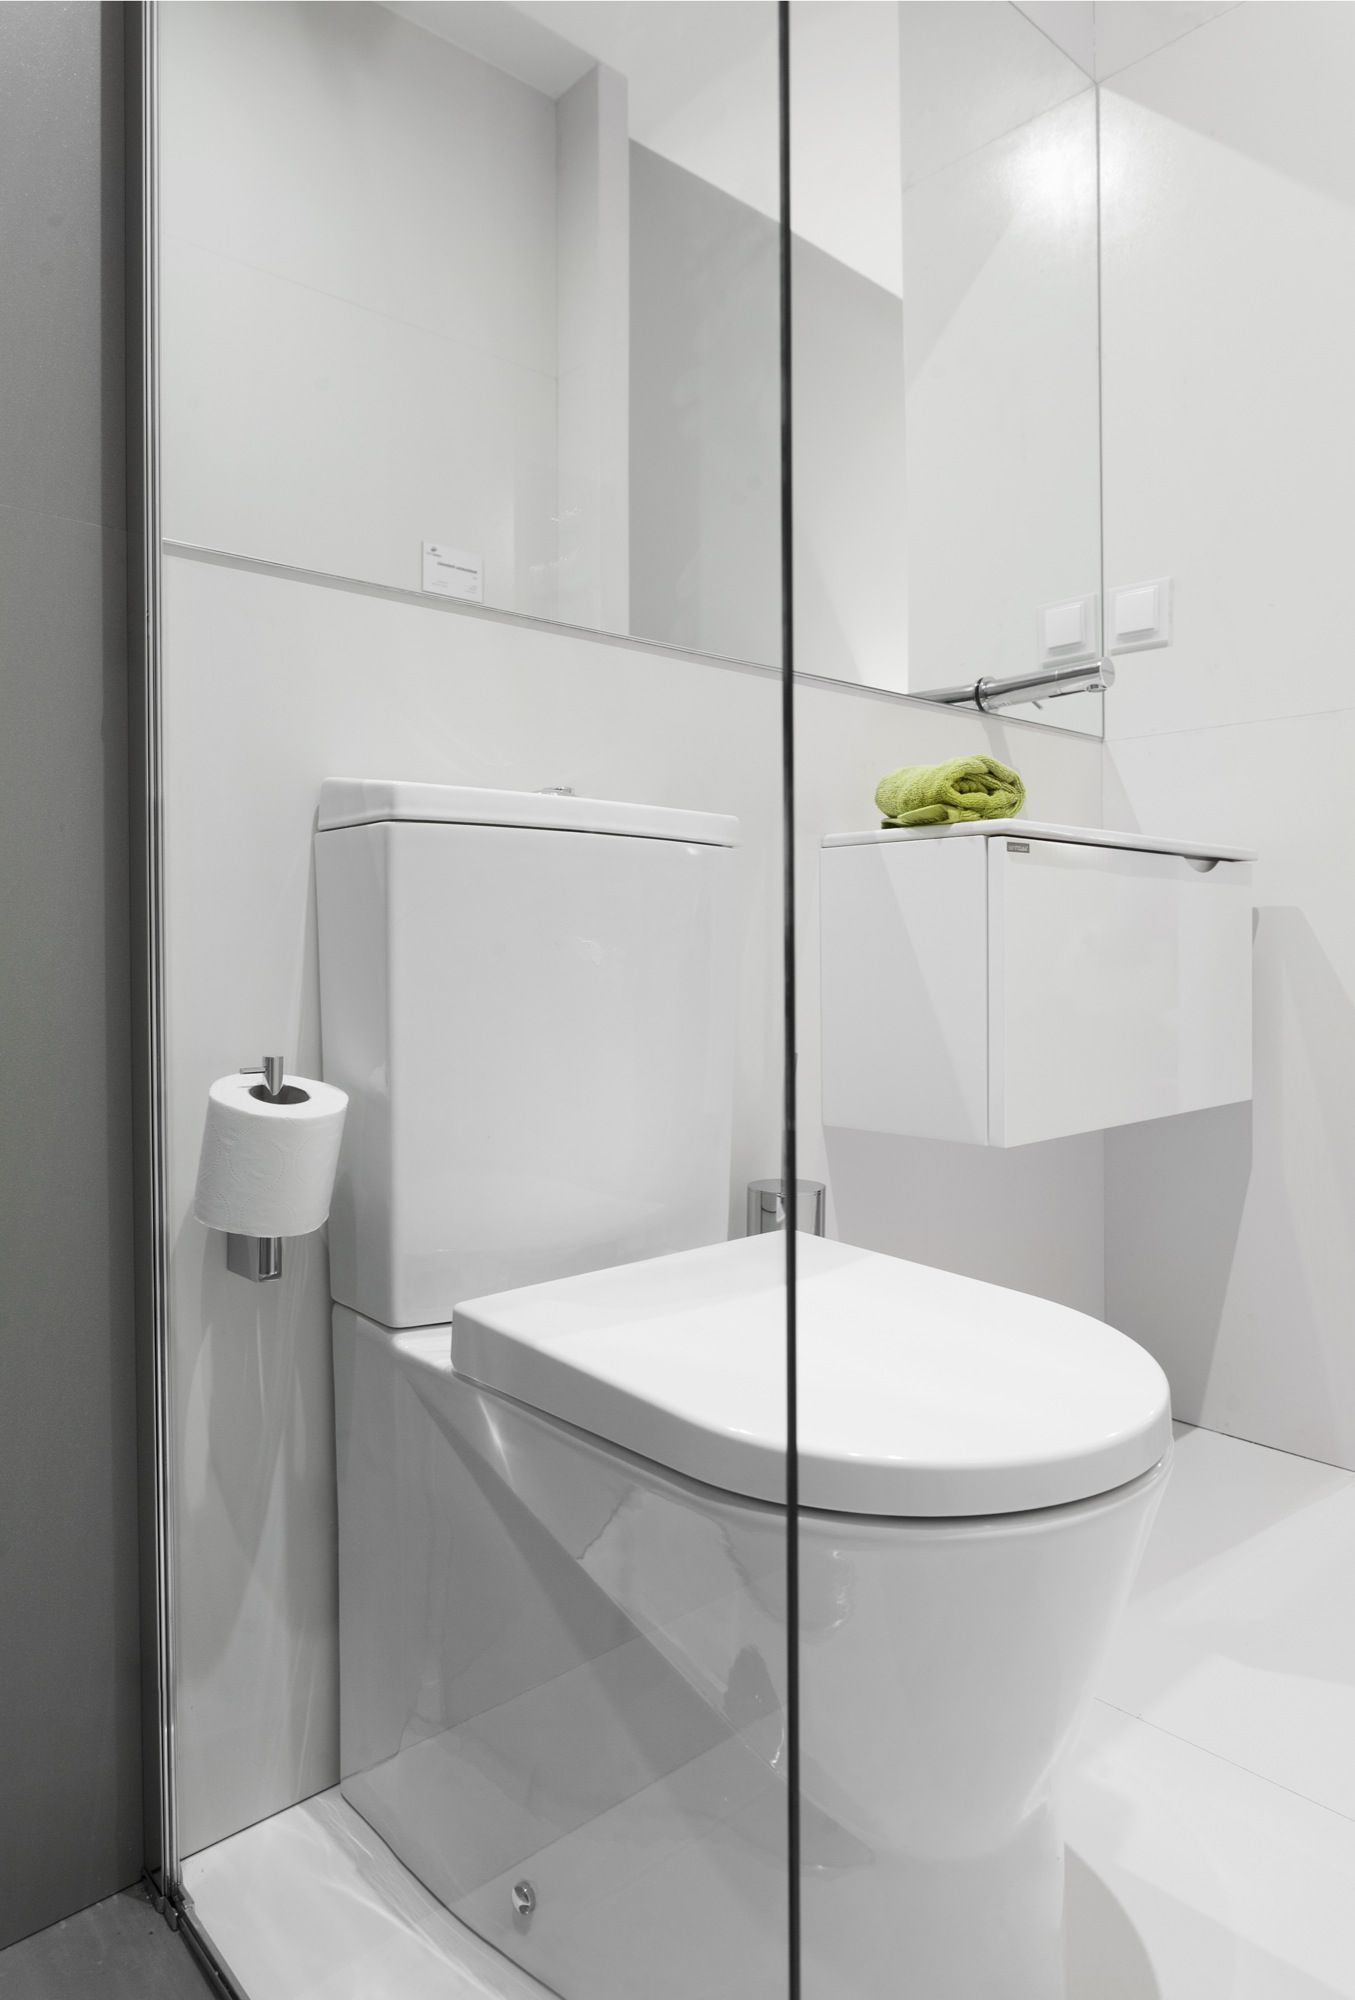 Narrow Bathroom With Sanindusa Products Small Toilet Size Small Basin With Cabinet Bathroom